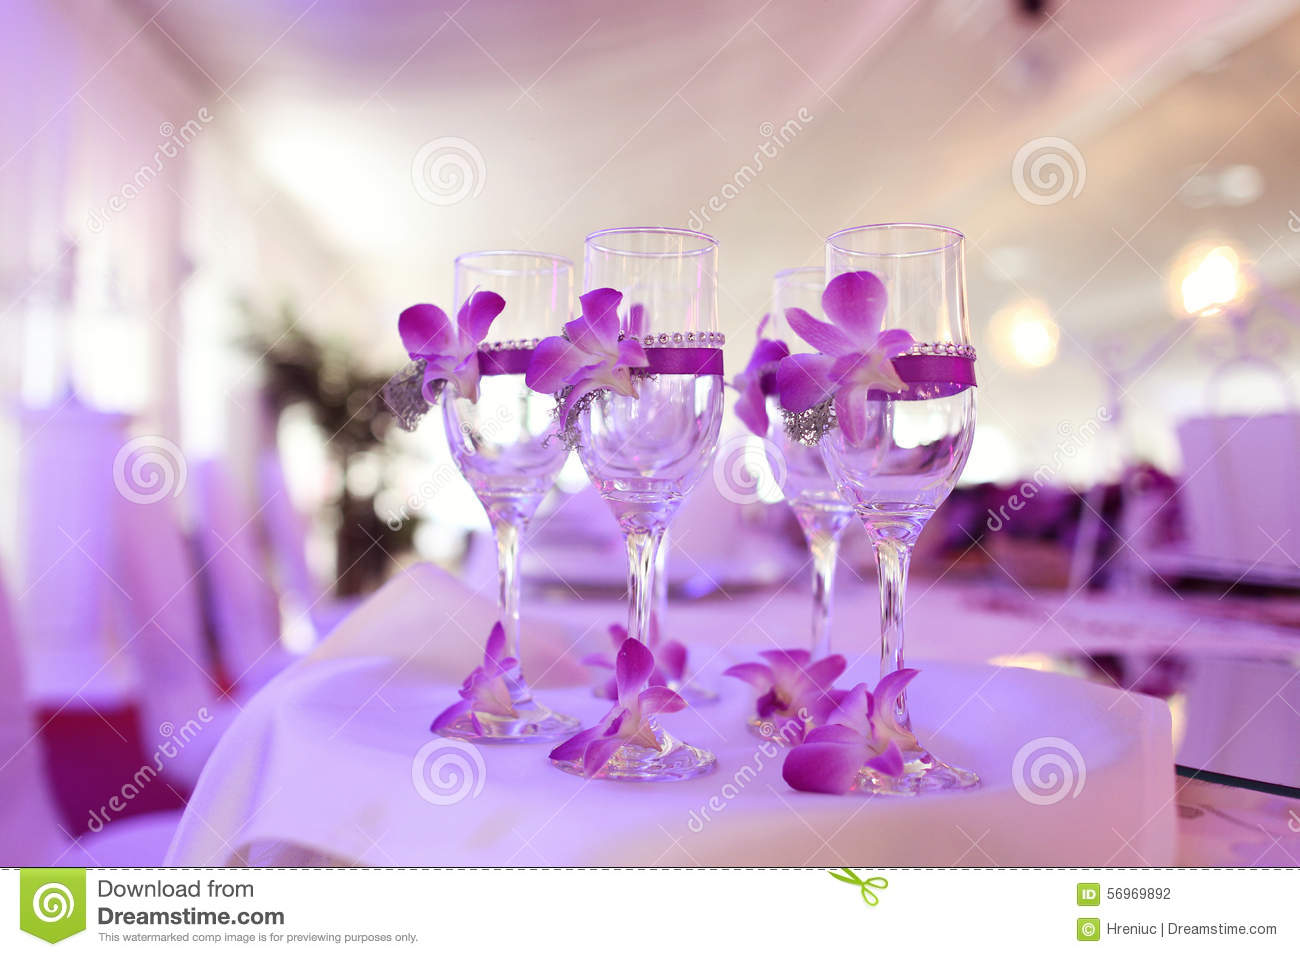 decorate champagne glasses. Royalty Free Stock Photo  Download Decorated Champagne Glasses Image 56969892